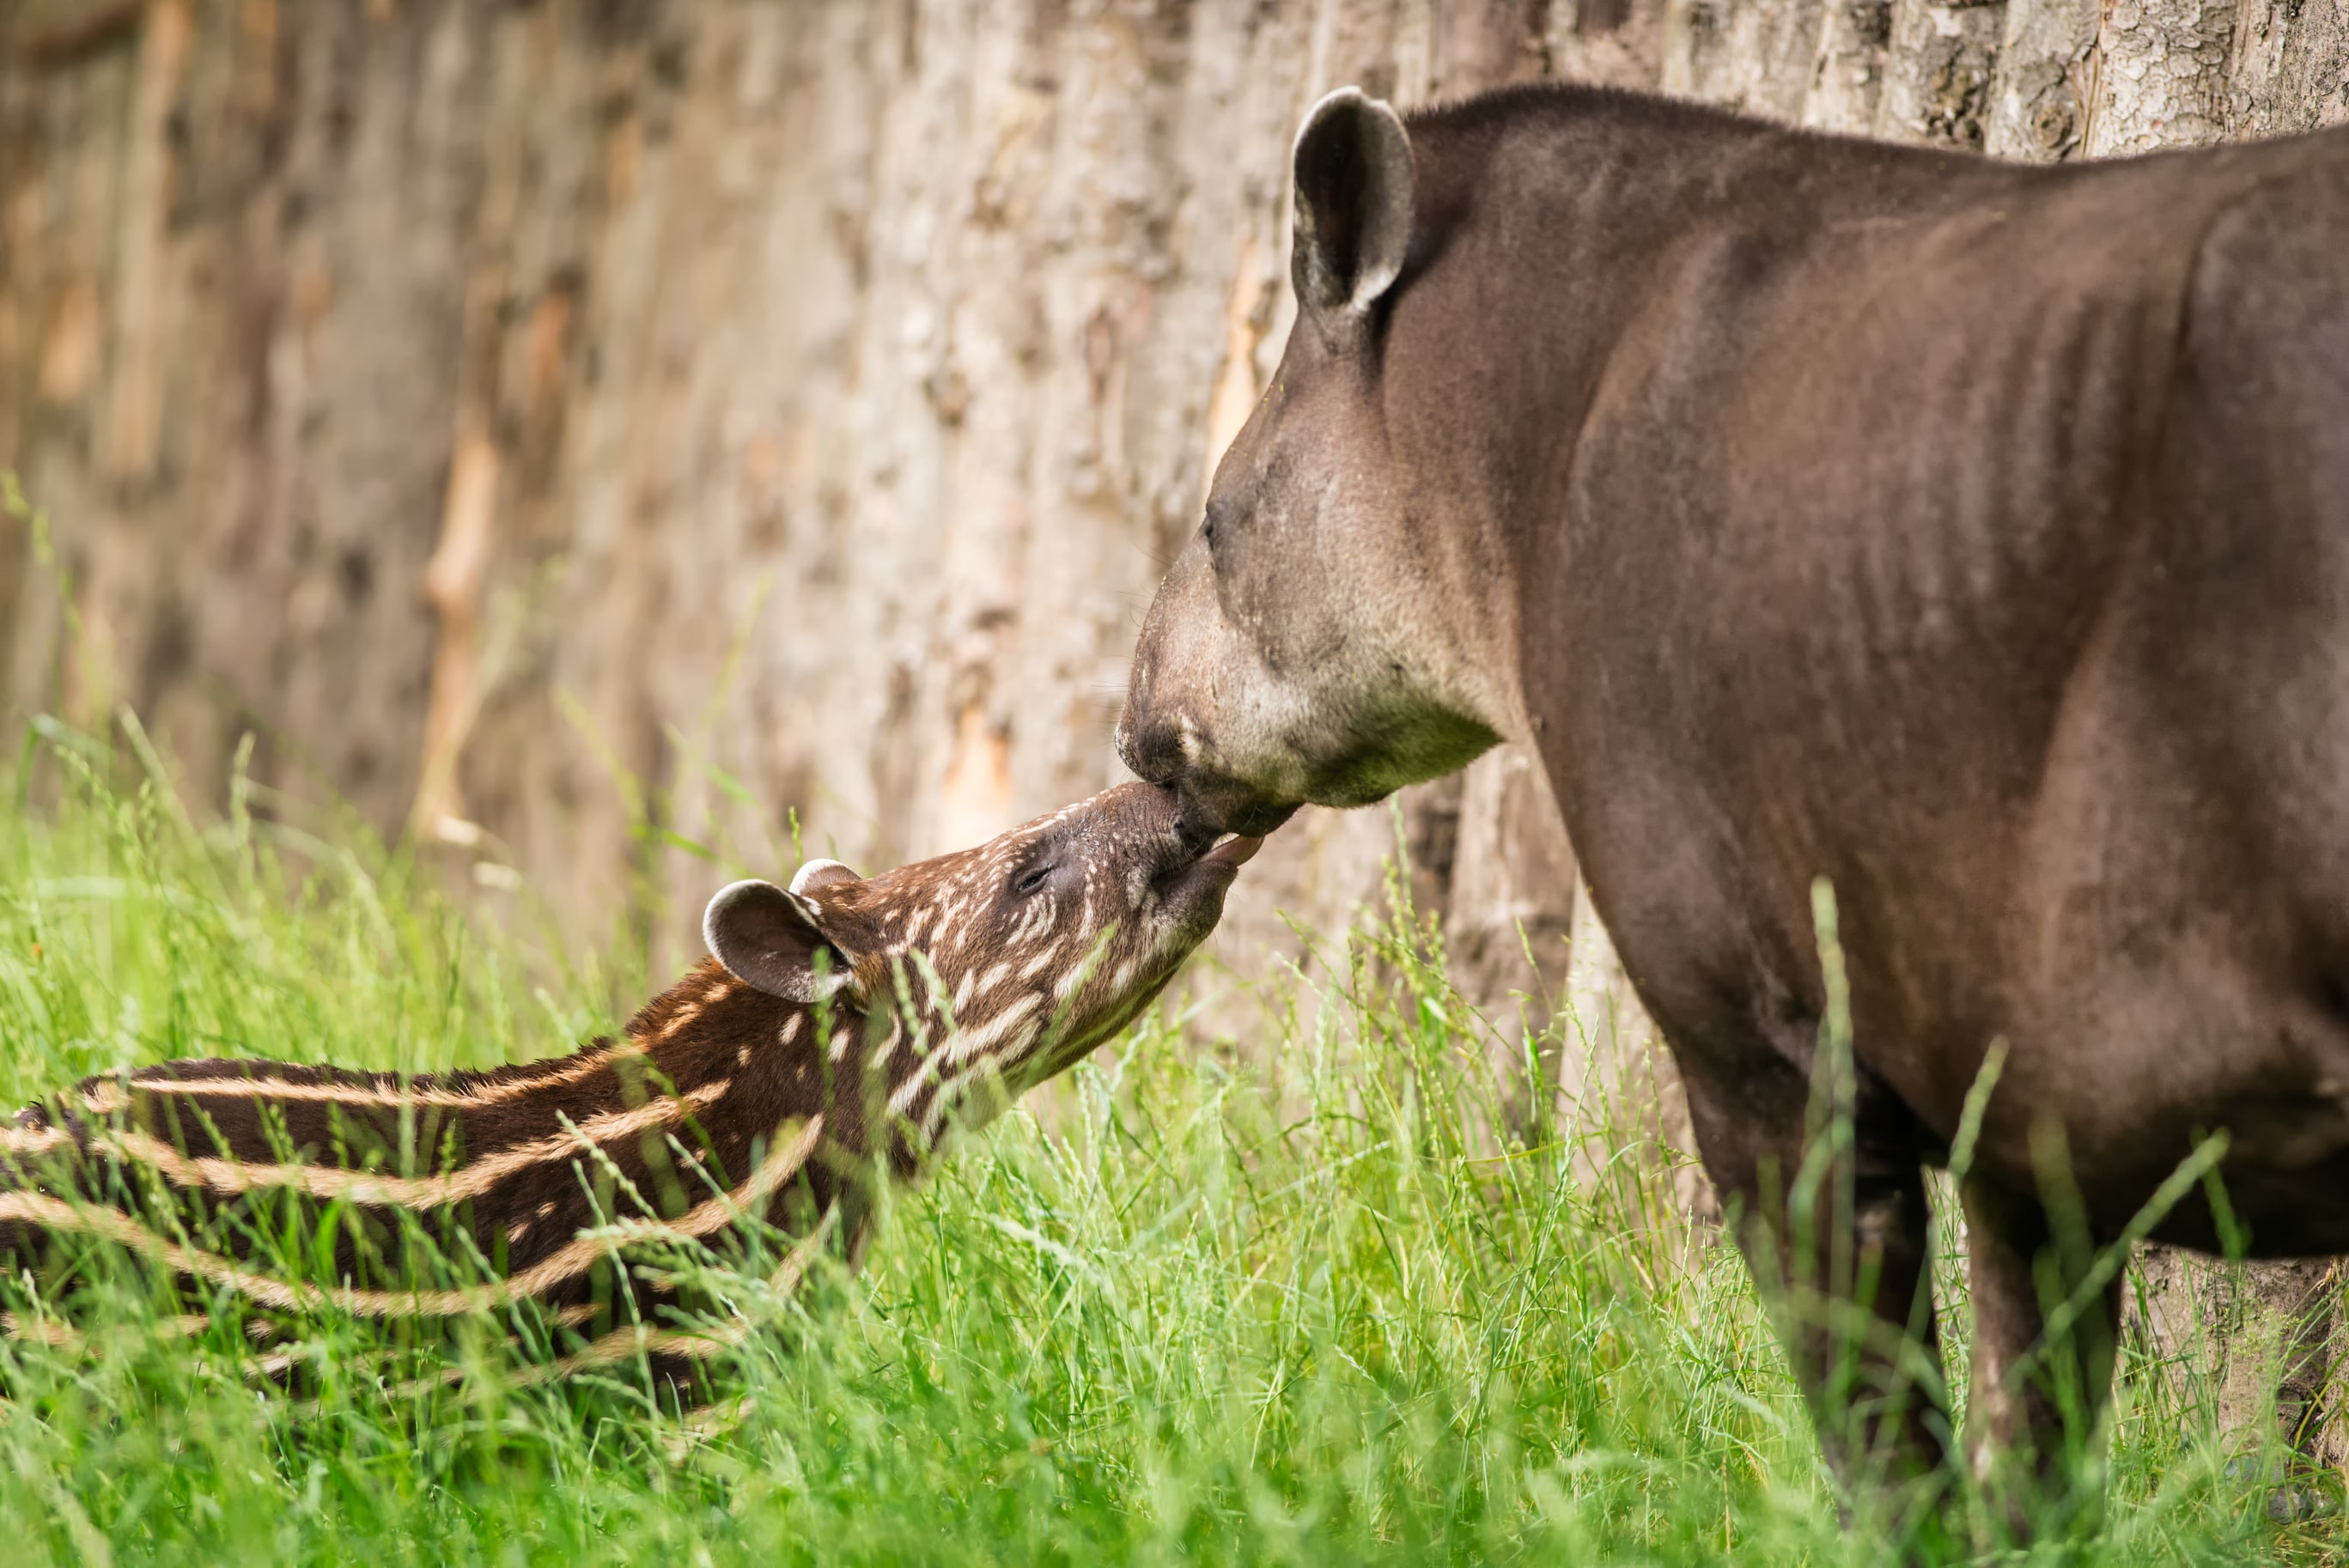 Tapir-Mother-&-Baby-Kissing